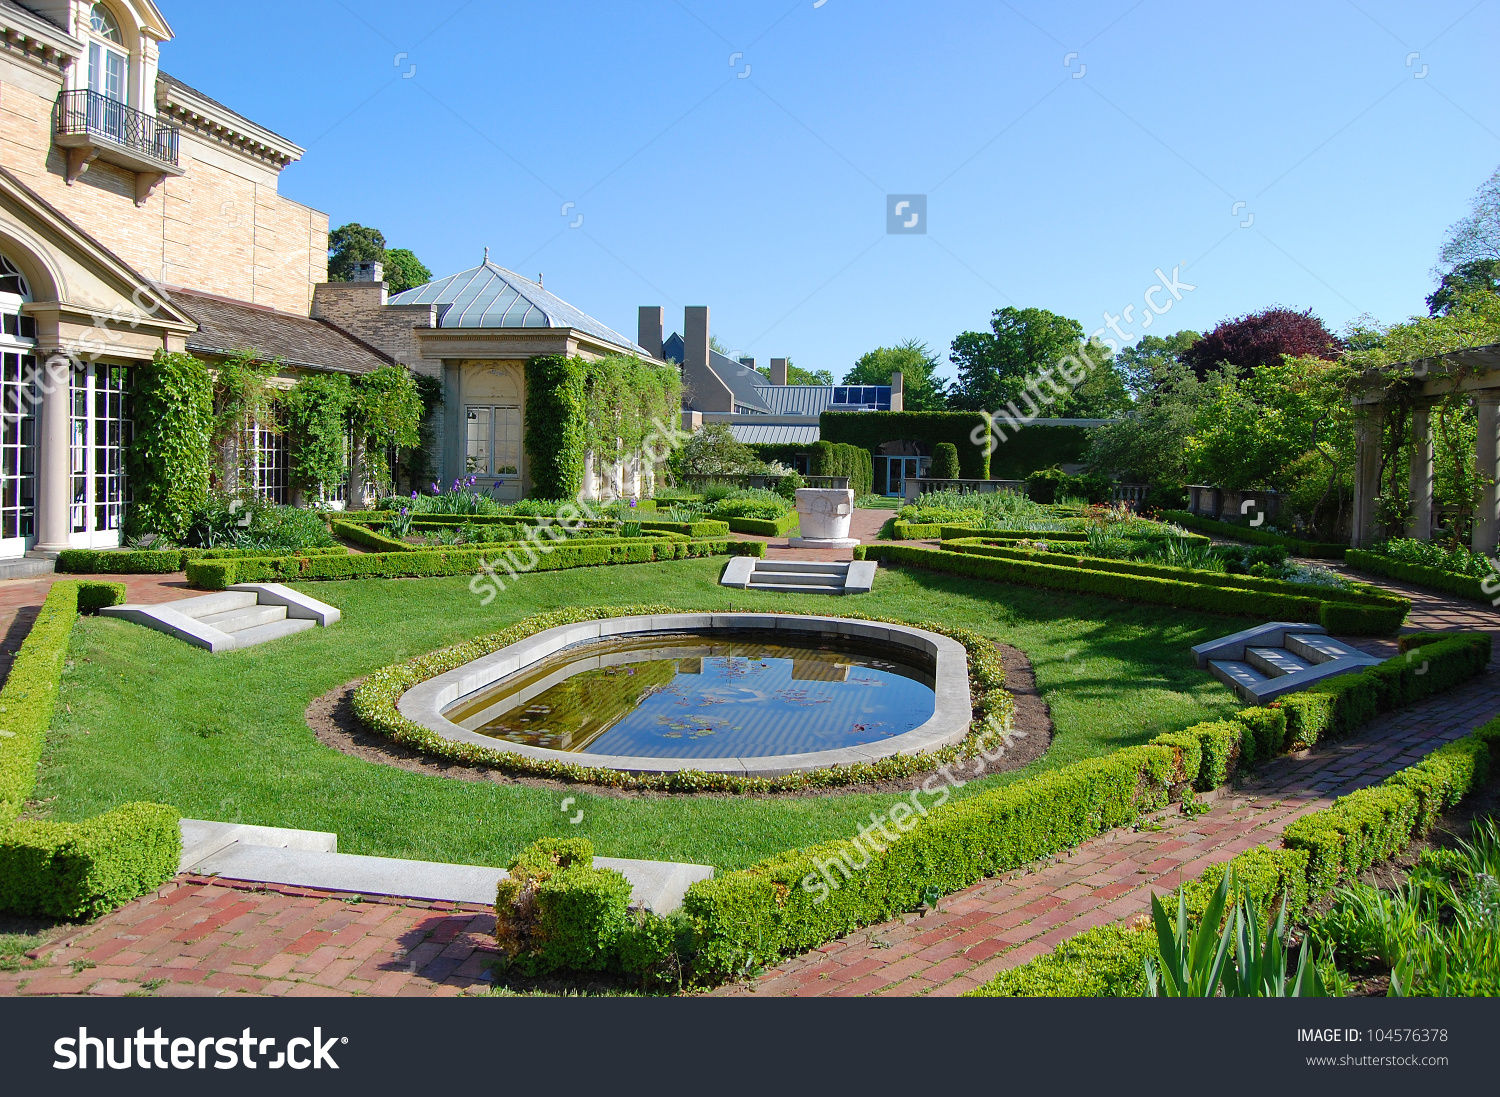 George Eastman House Garden Rochester New Stock Photo 104576378.